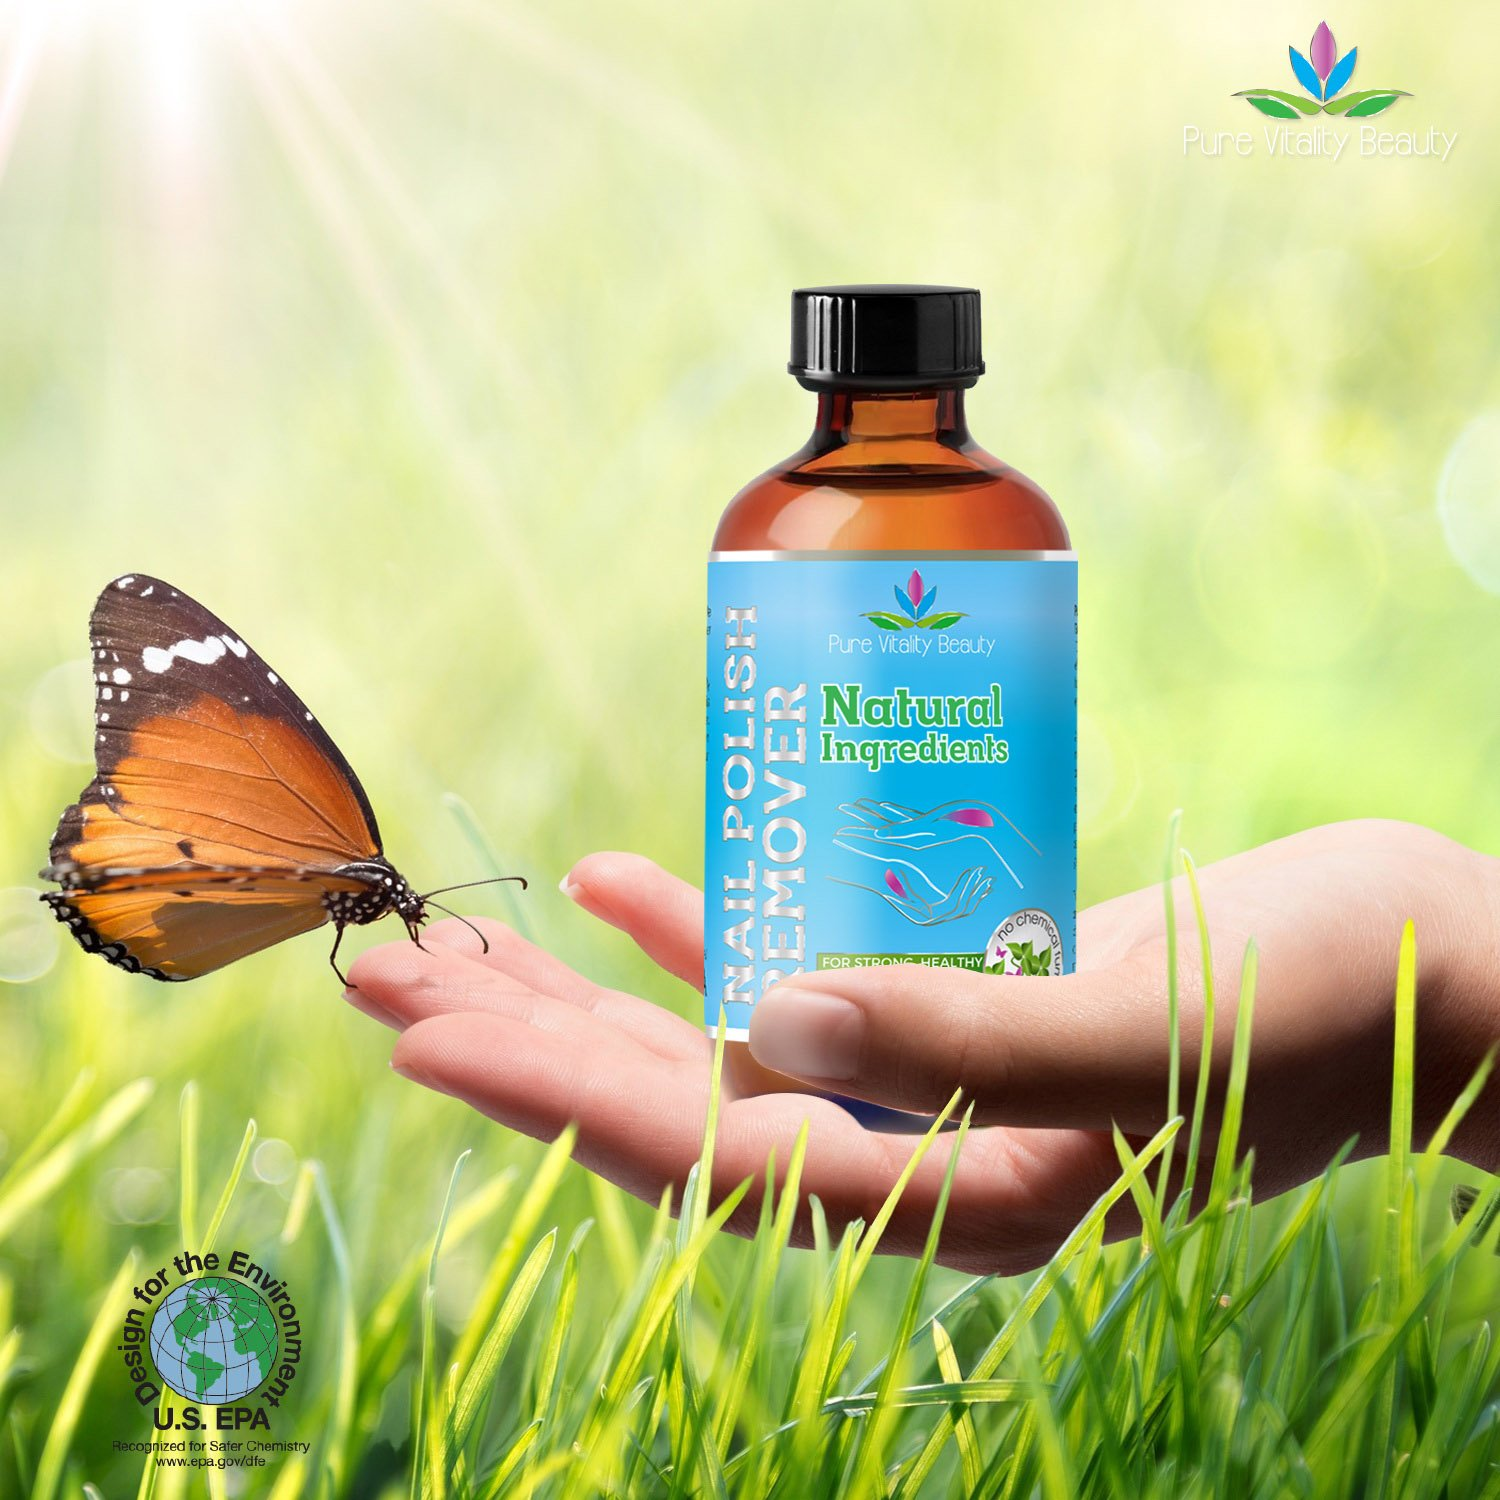 Nail Polish Remover - Natural and Plant Based - Non Acetone - Conditioner and Strengthener for Nails and Cuticles - Safe for Kids - no Chemicals and Non Toxic by Pure Vitality Beauty (Image #4)